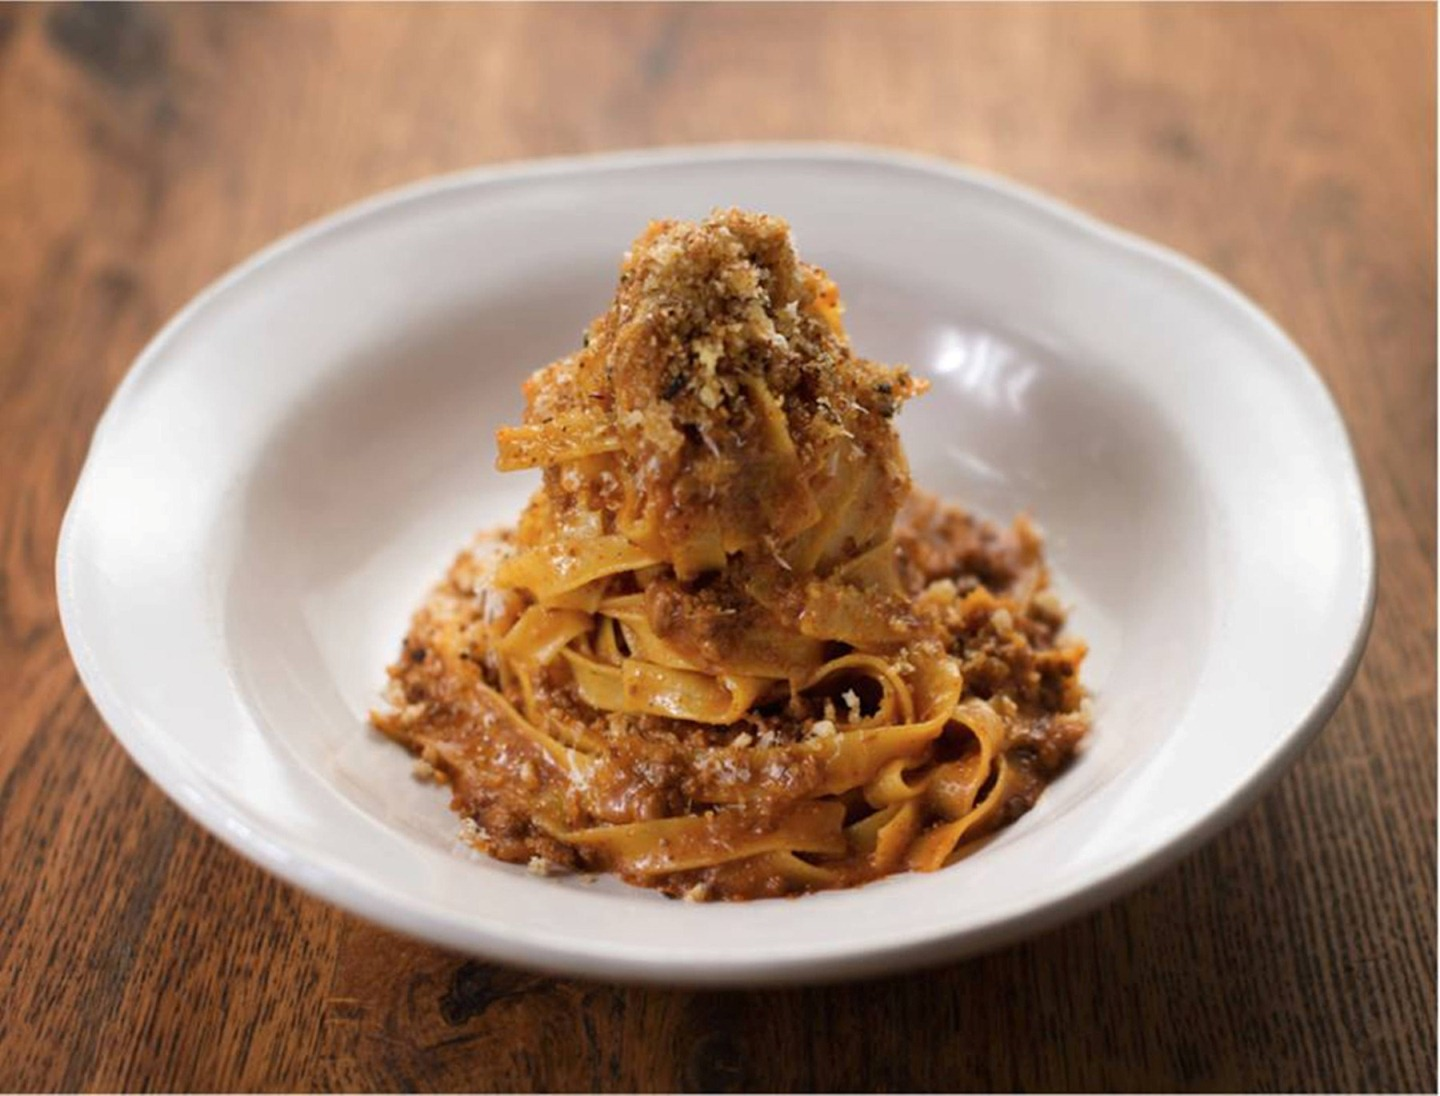 4-tagliatelle-bolognese-recommended-dish